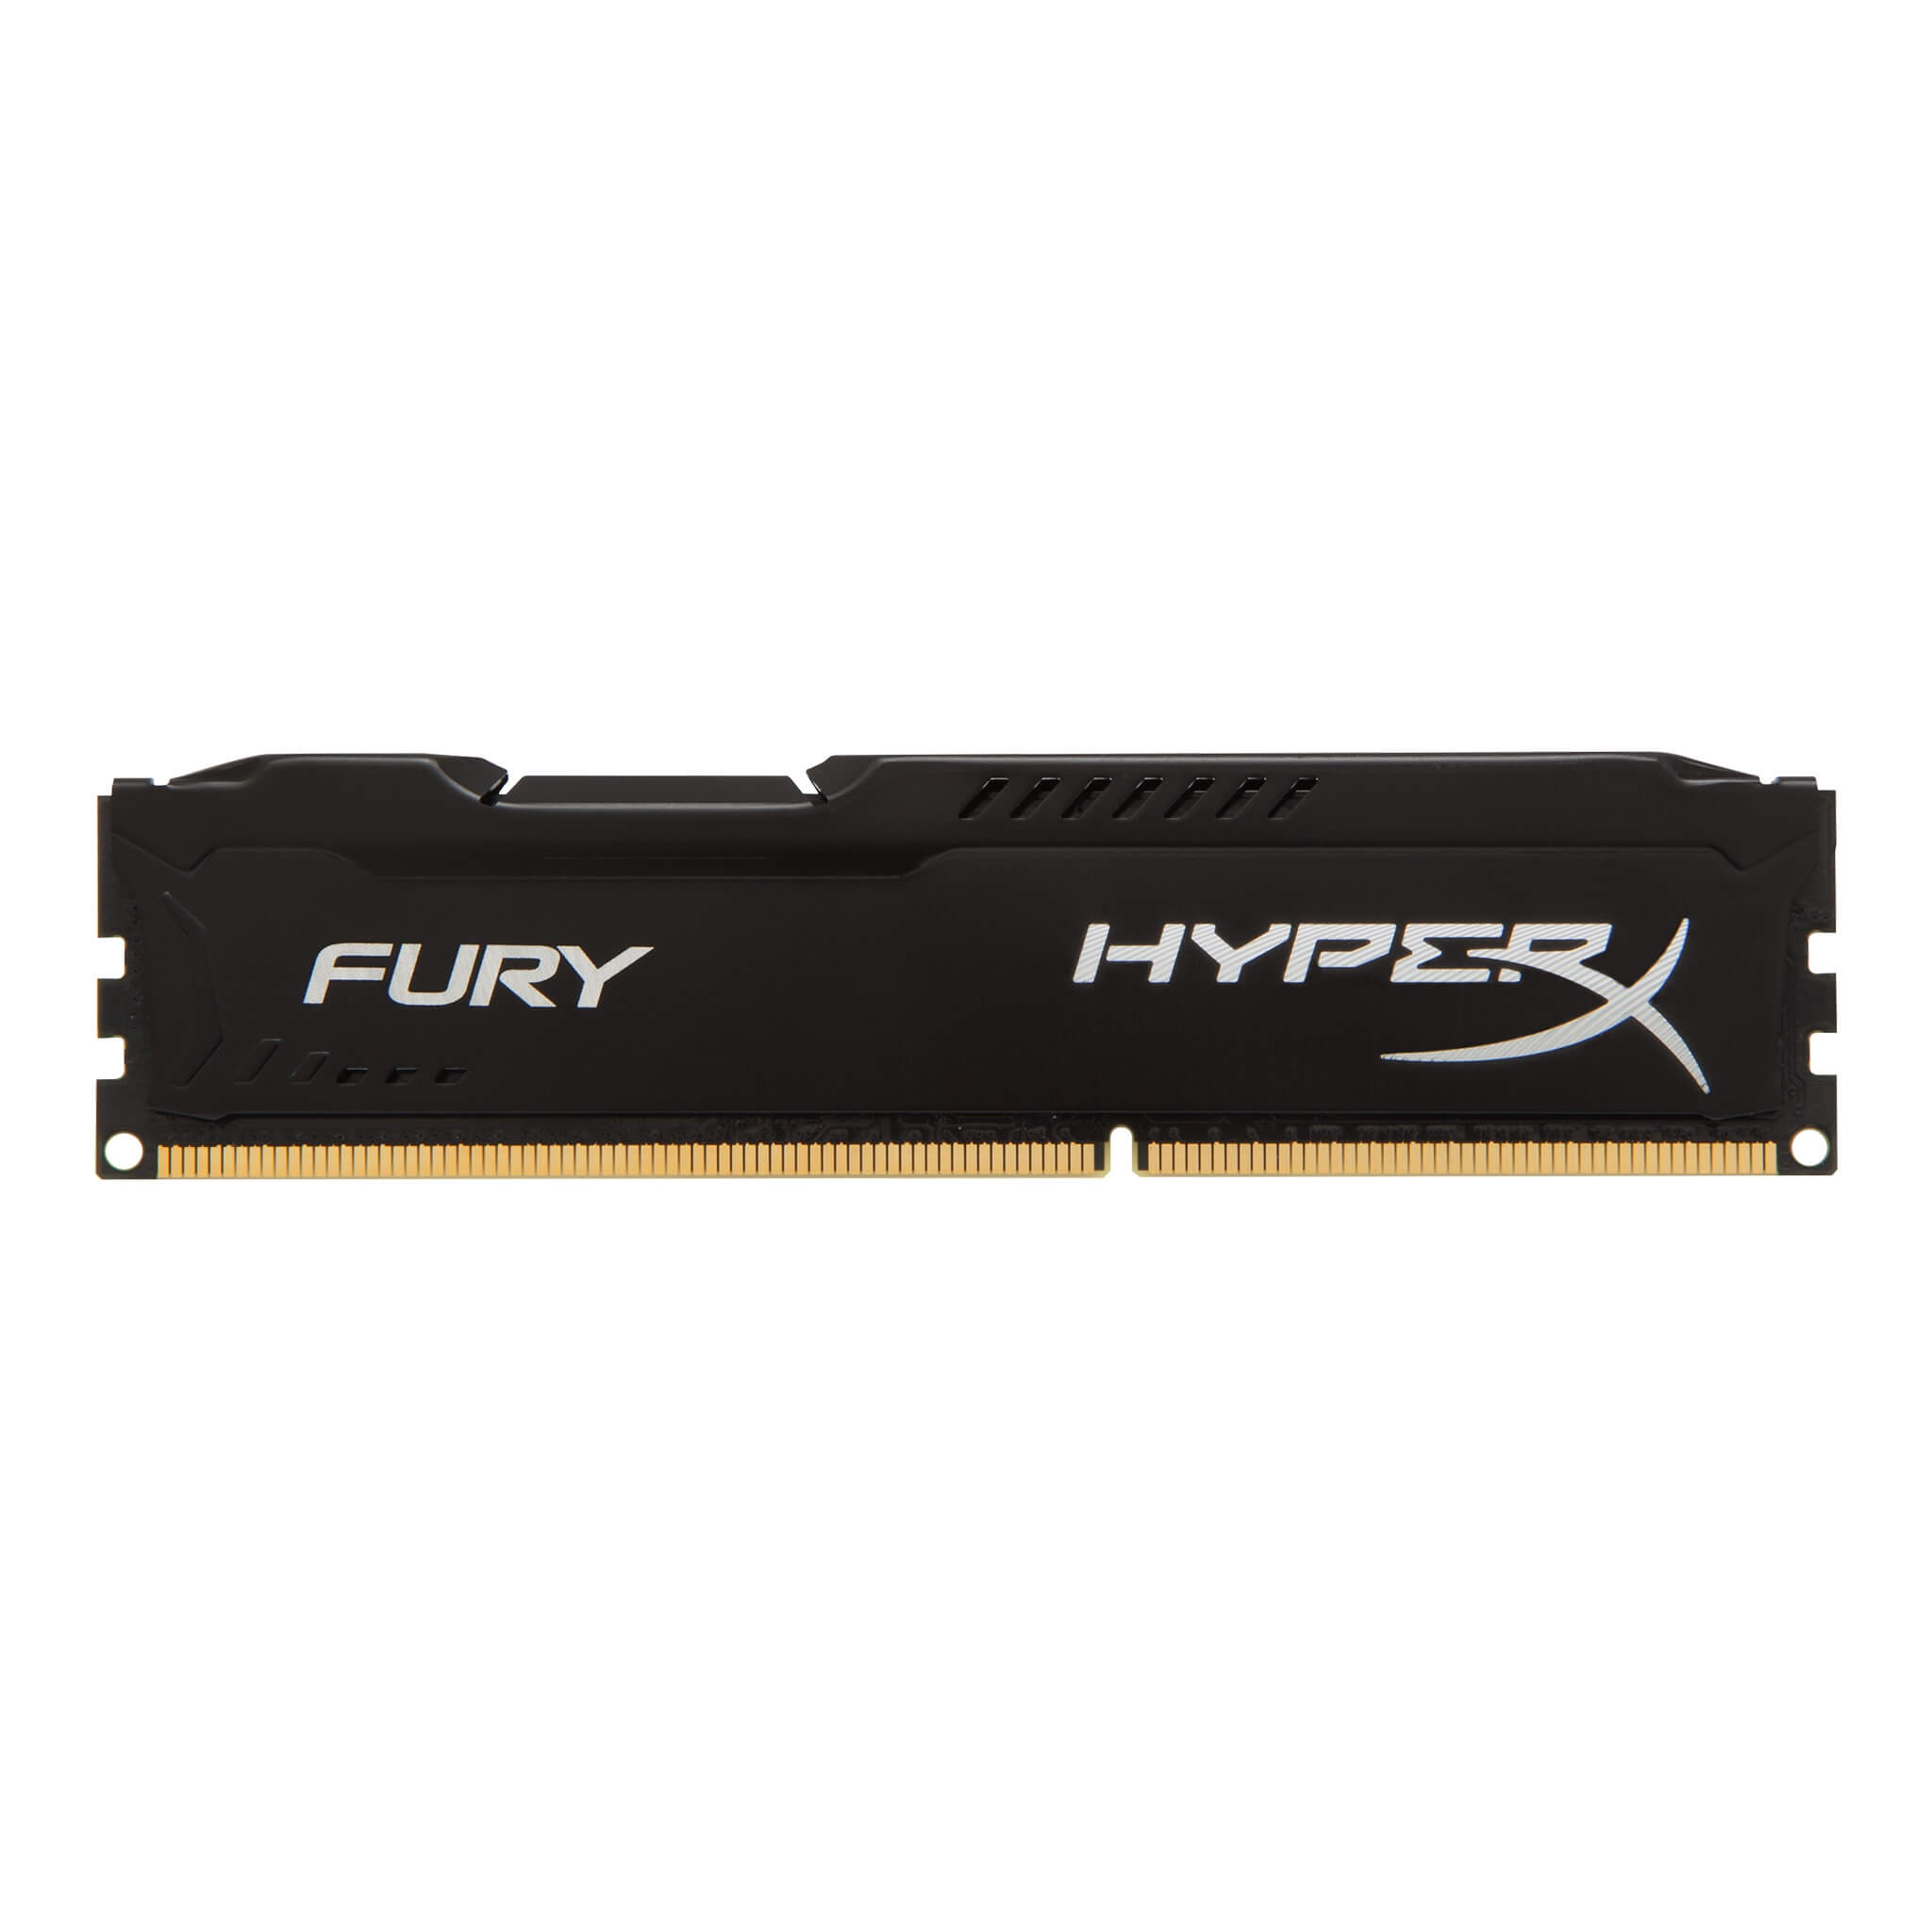 PAMIĘĆ RAM KINGSTON HYPERX FURY BLACK DDR3 4GB 1600 MHz SINGLE DO PC